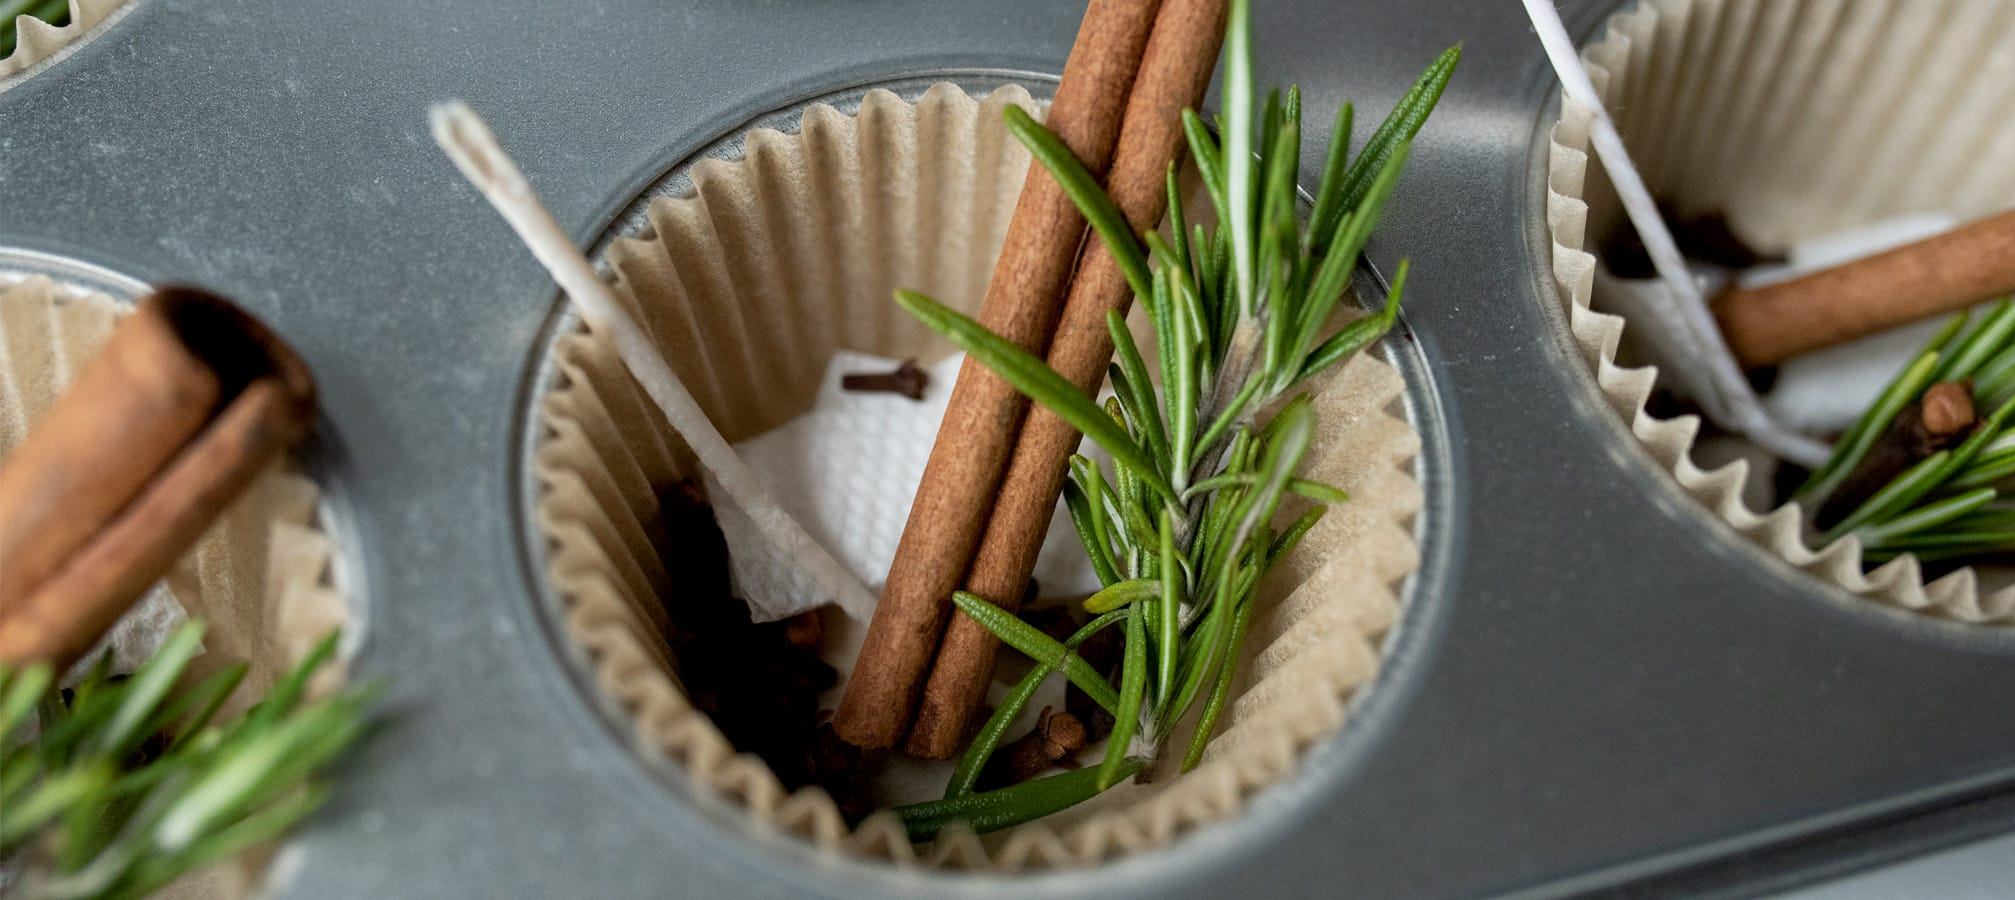 Rosemary and cinnamon in a muffin tin.